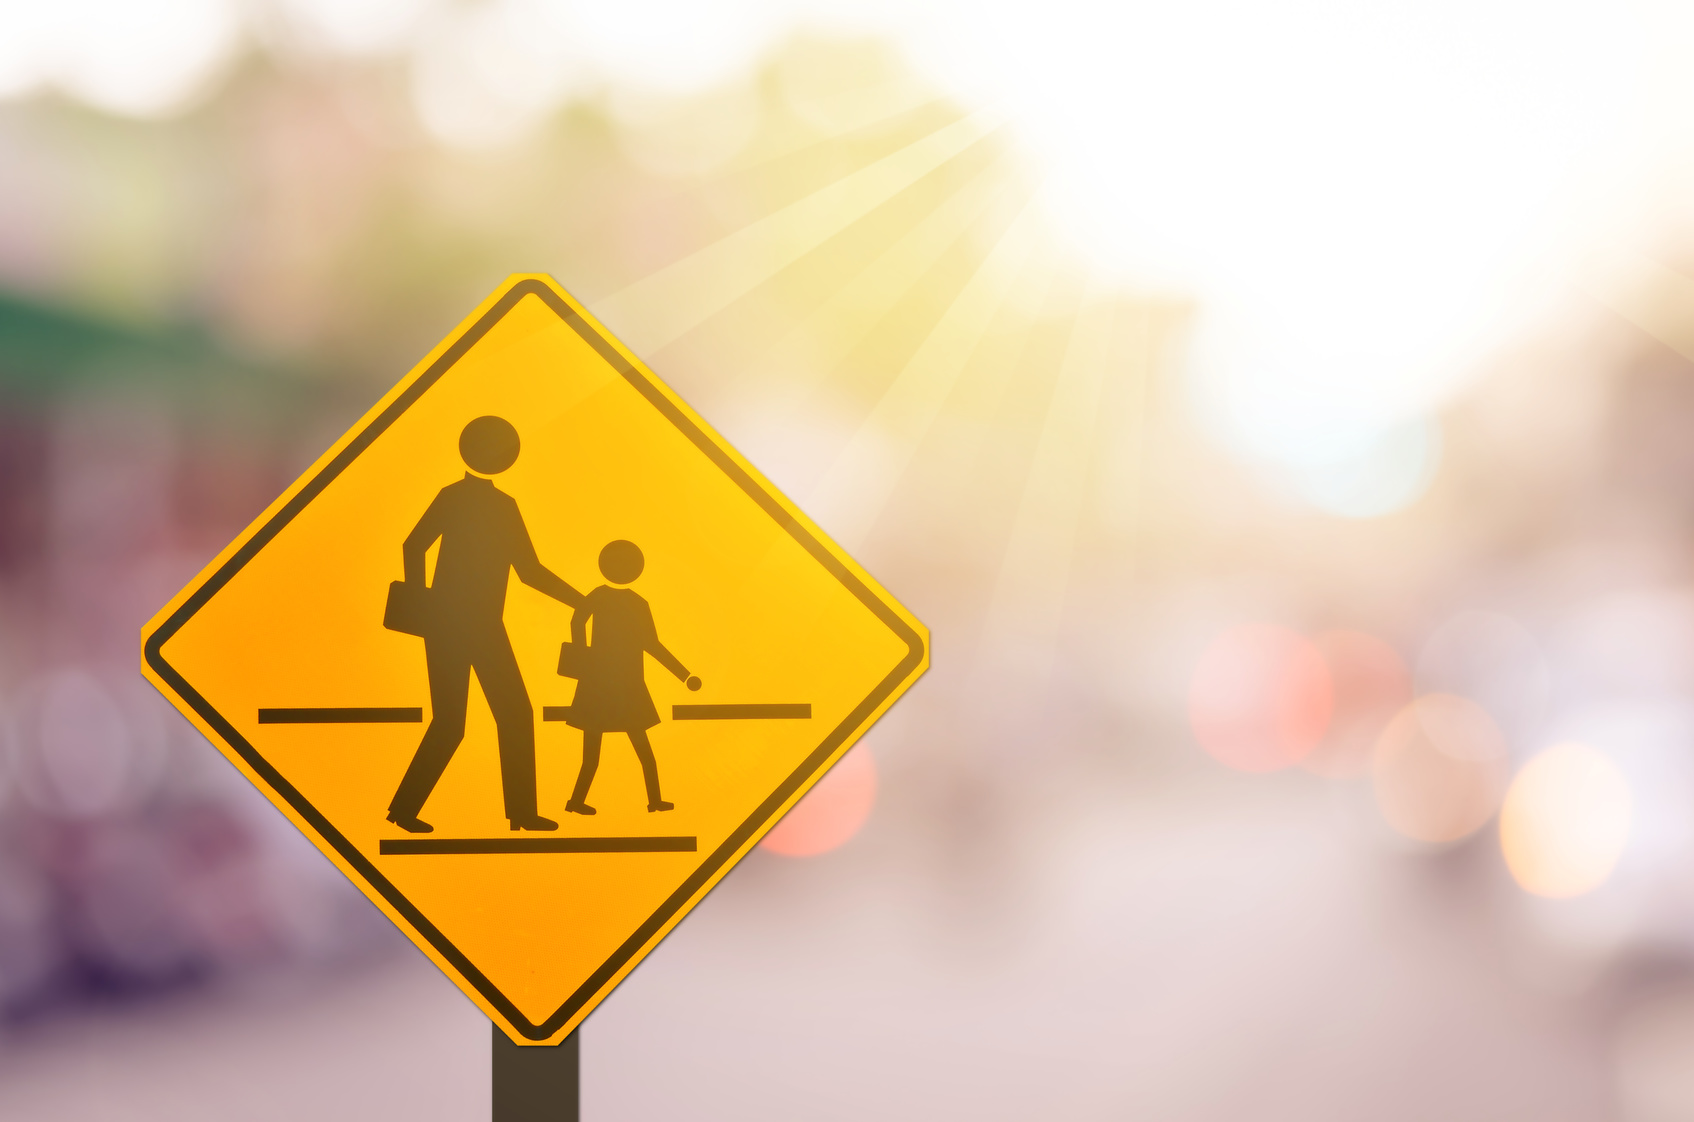 School zone warning sign on blur traffic road with colorful bokeh light abstract background._1507129528627